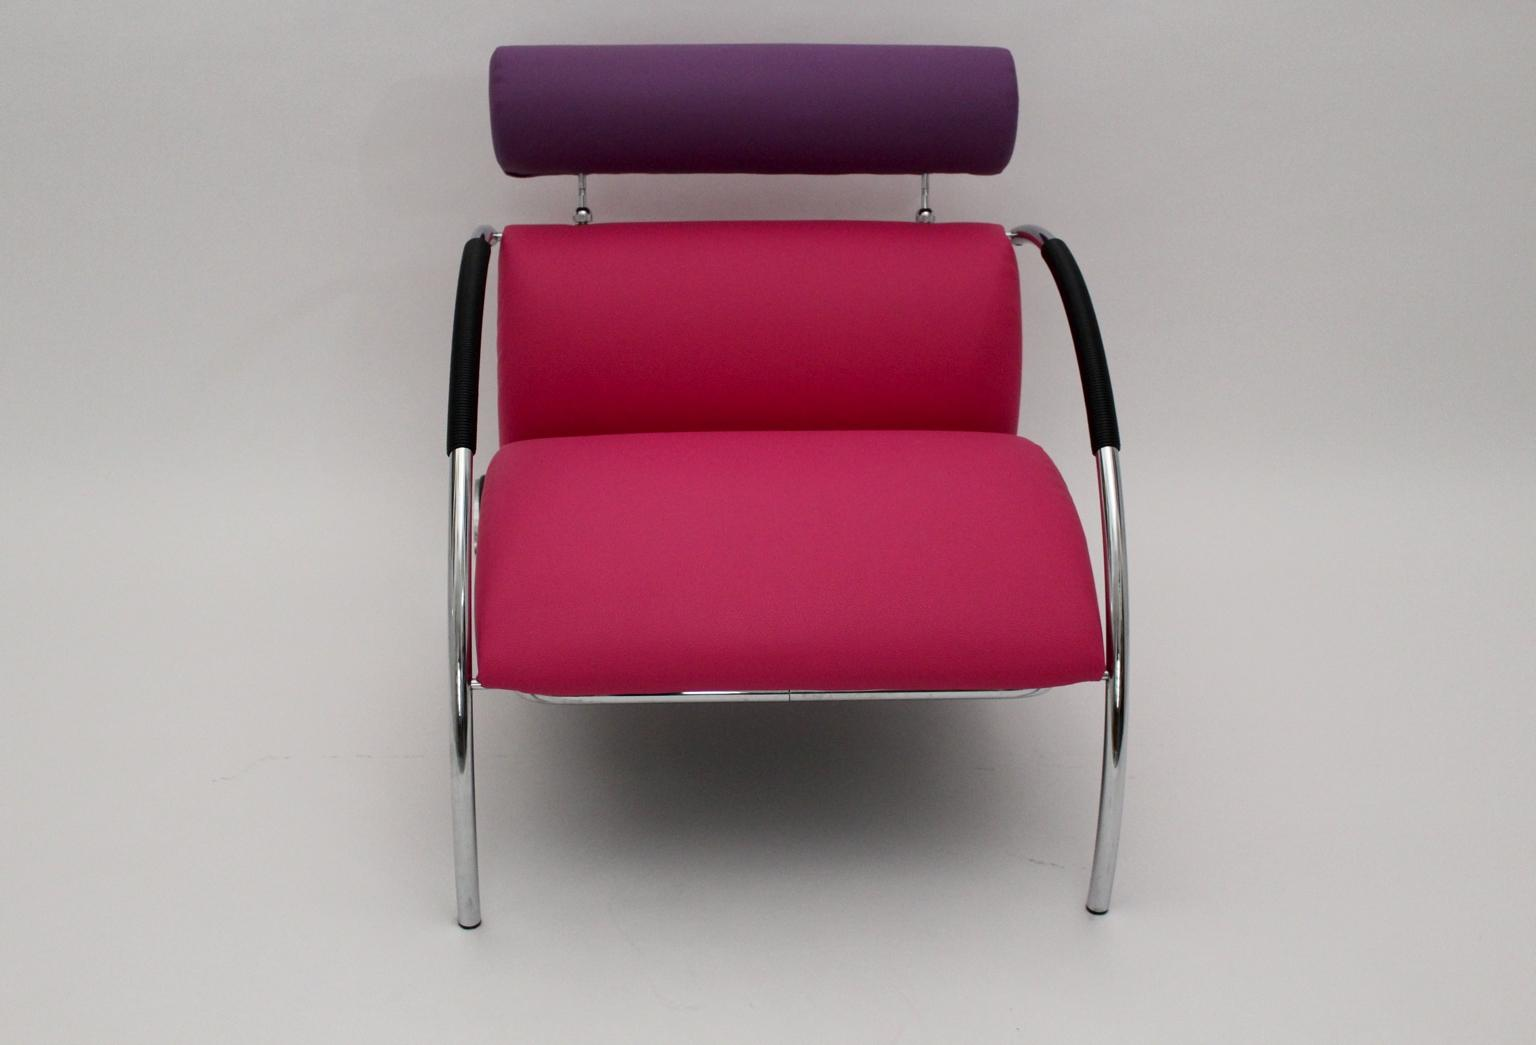 Lounge chair zyklus by peter maly 1980s germany from for Annabelle chaise